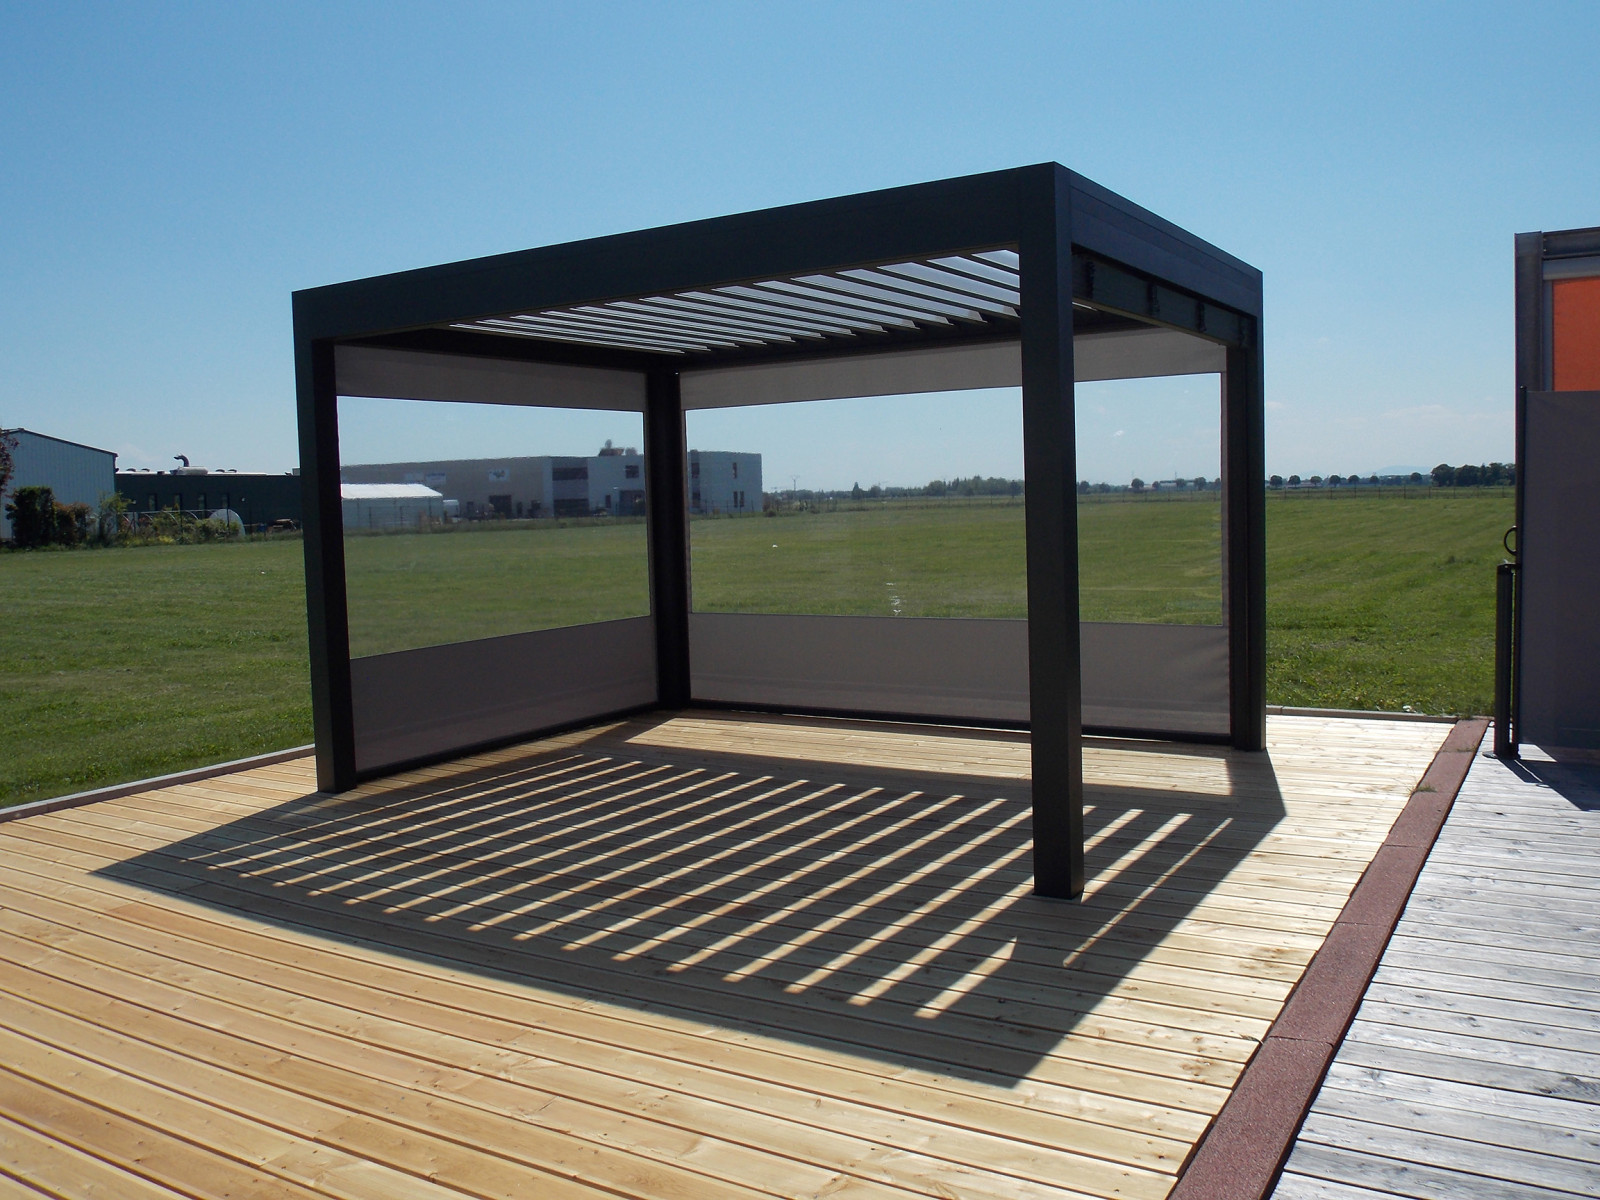 Pergola alu bioclimatique for Pergola bioclimatique retractable